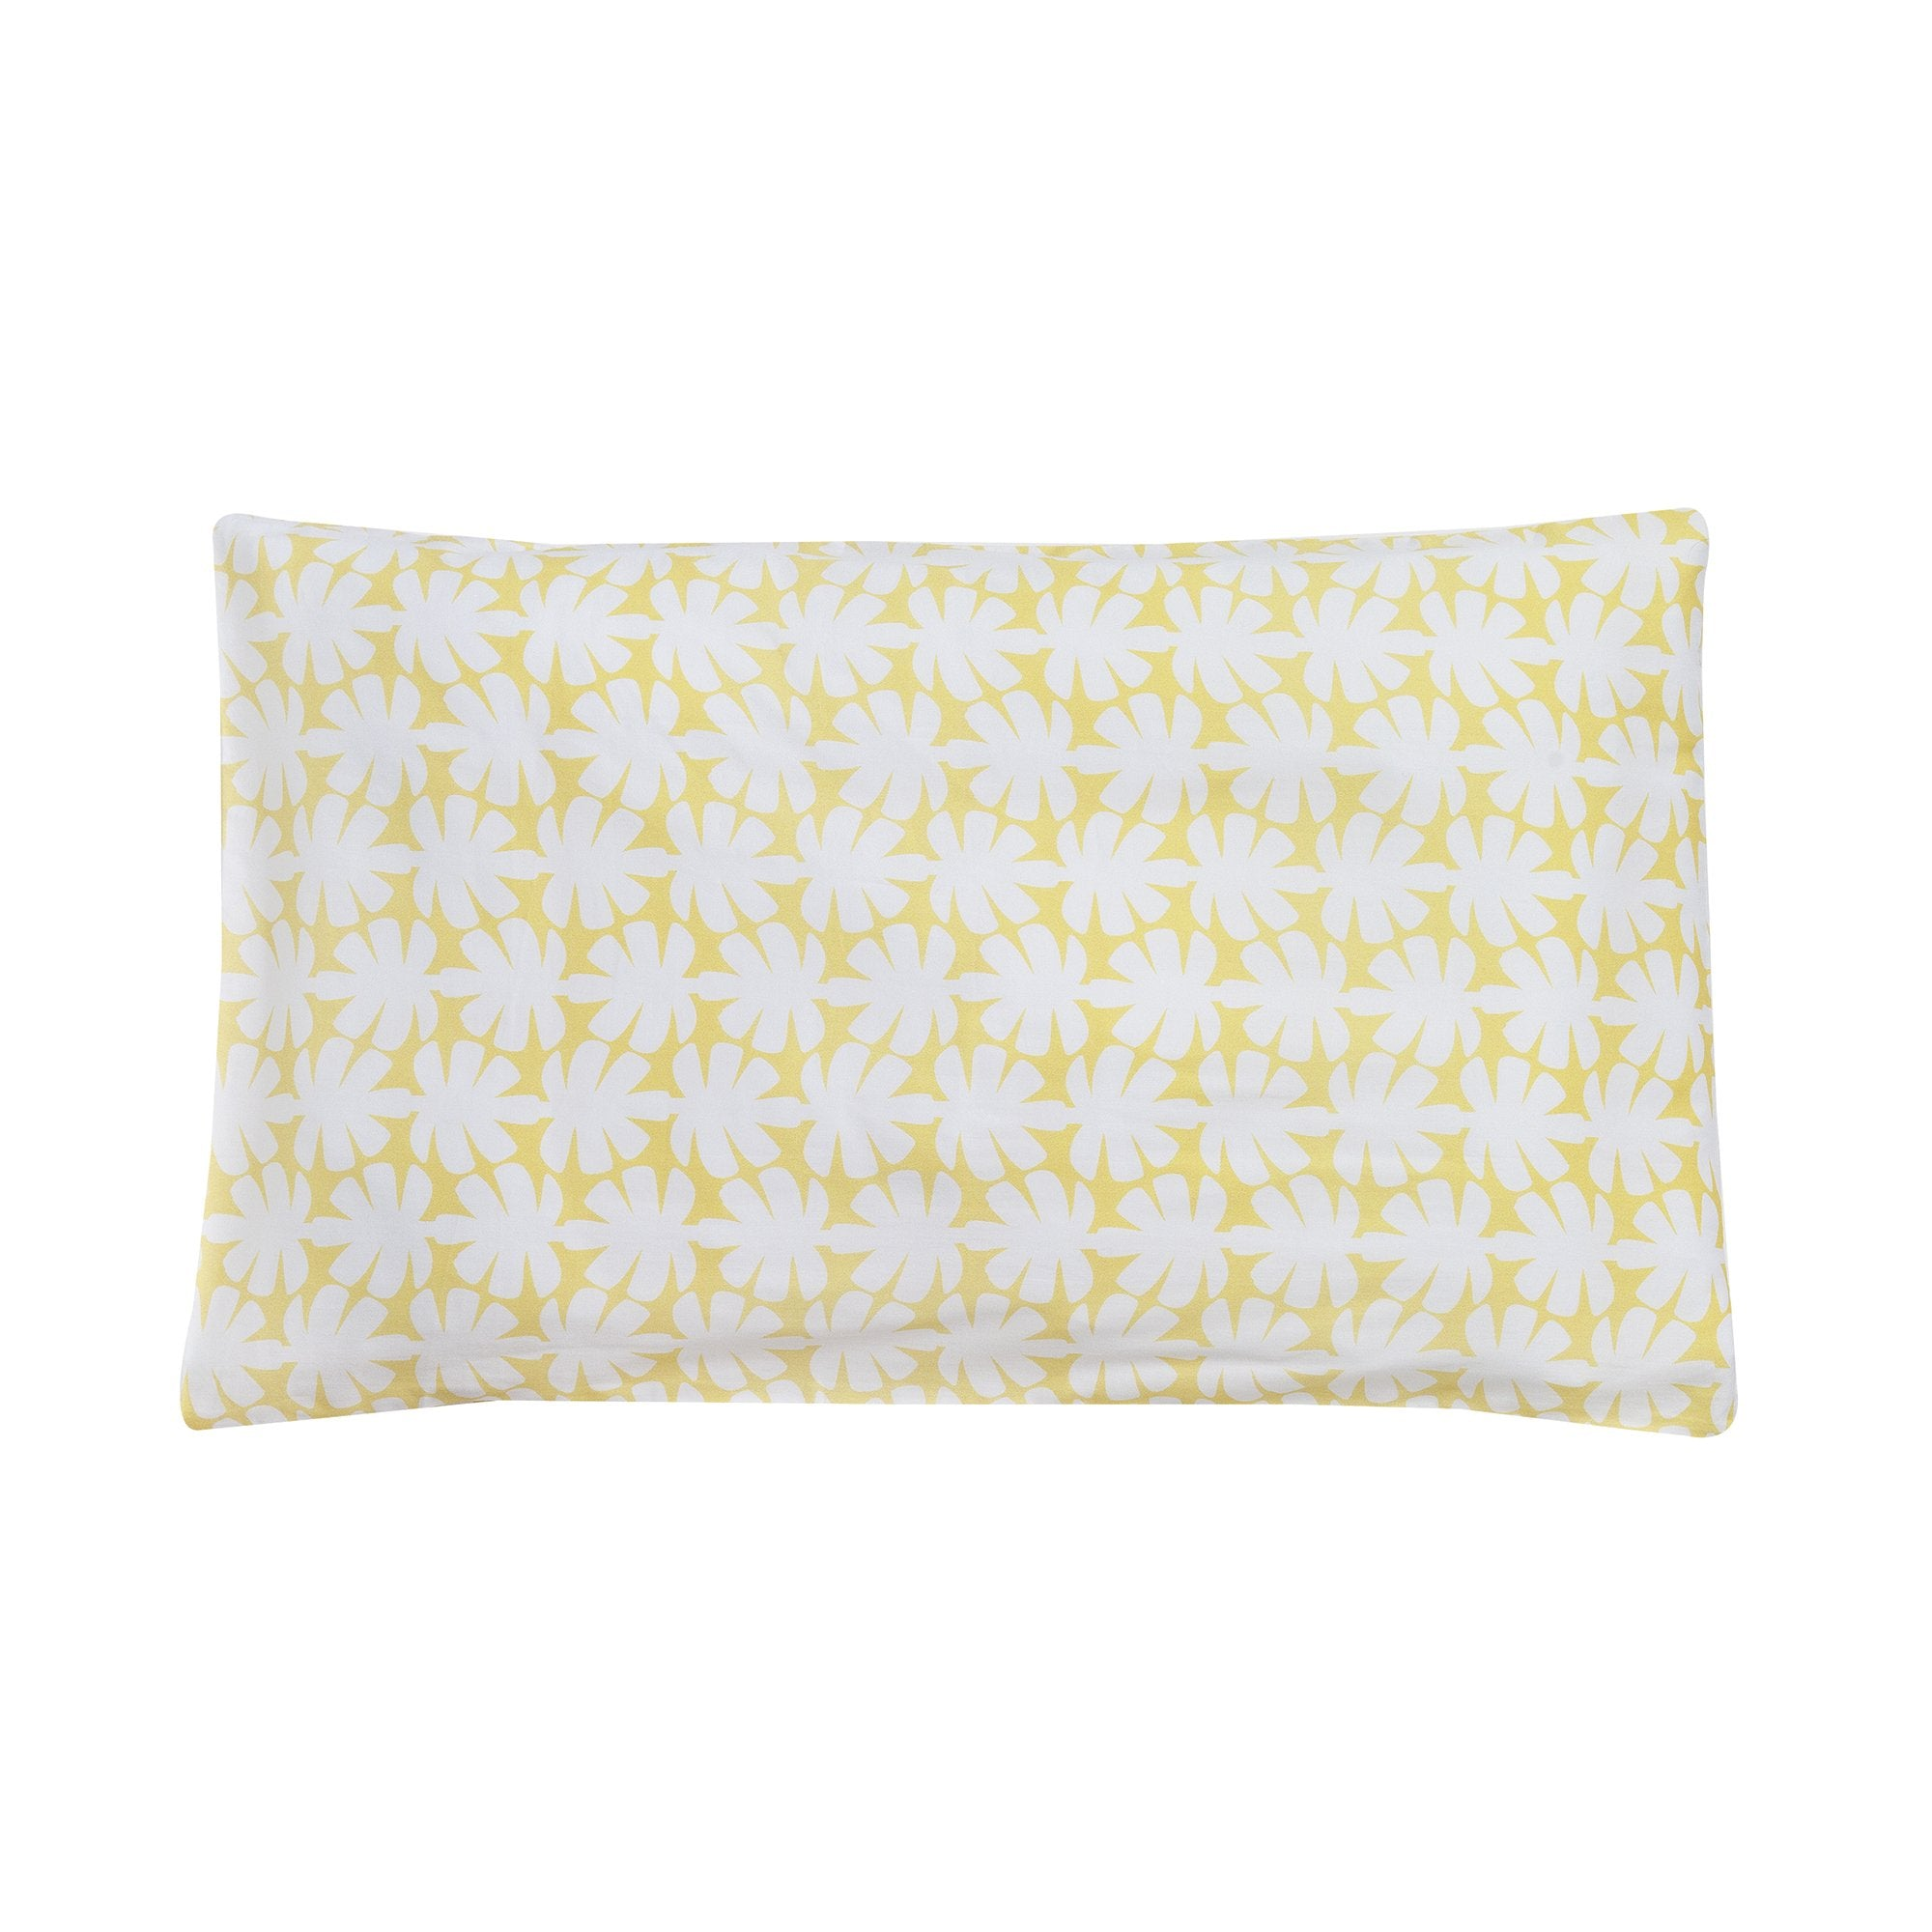 Kikau's Mango Yellow Coco Palm kids pillowcase on white background